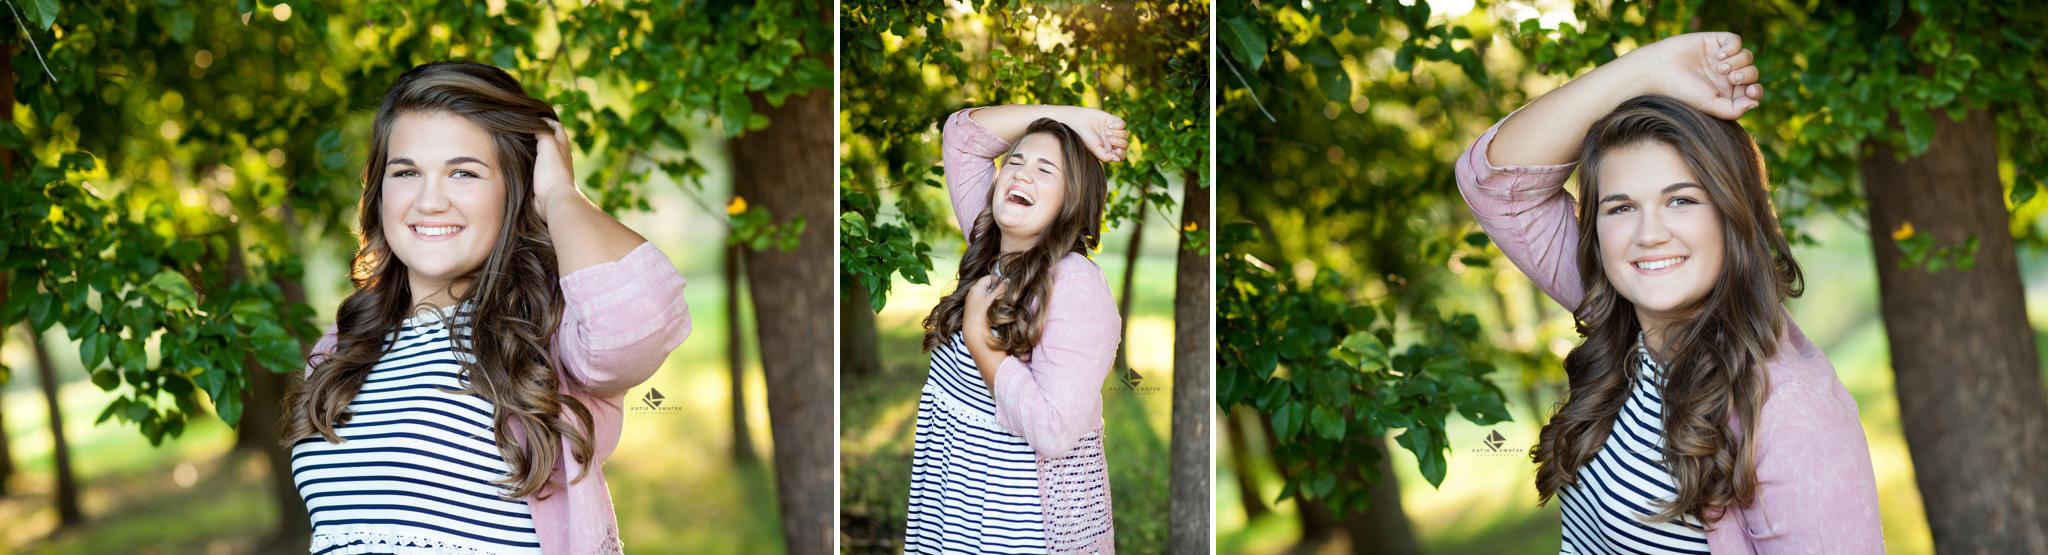 brunette senior girl in a pink jacket over a white and black striped top stands next to bright green trees with natural backlight